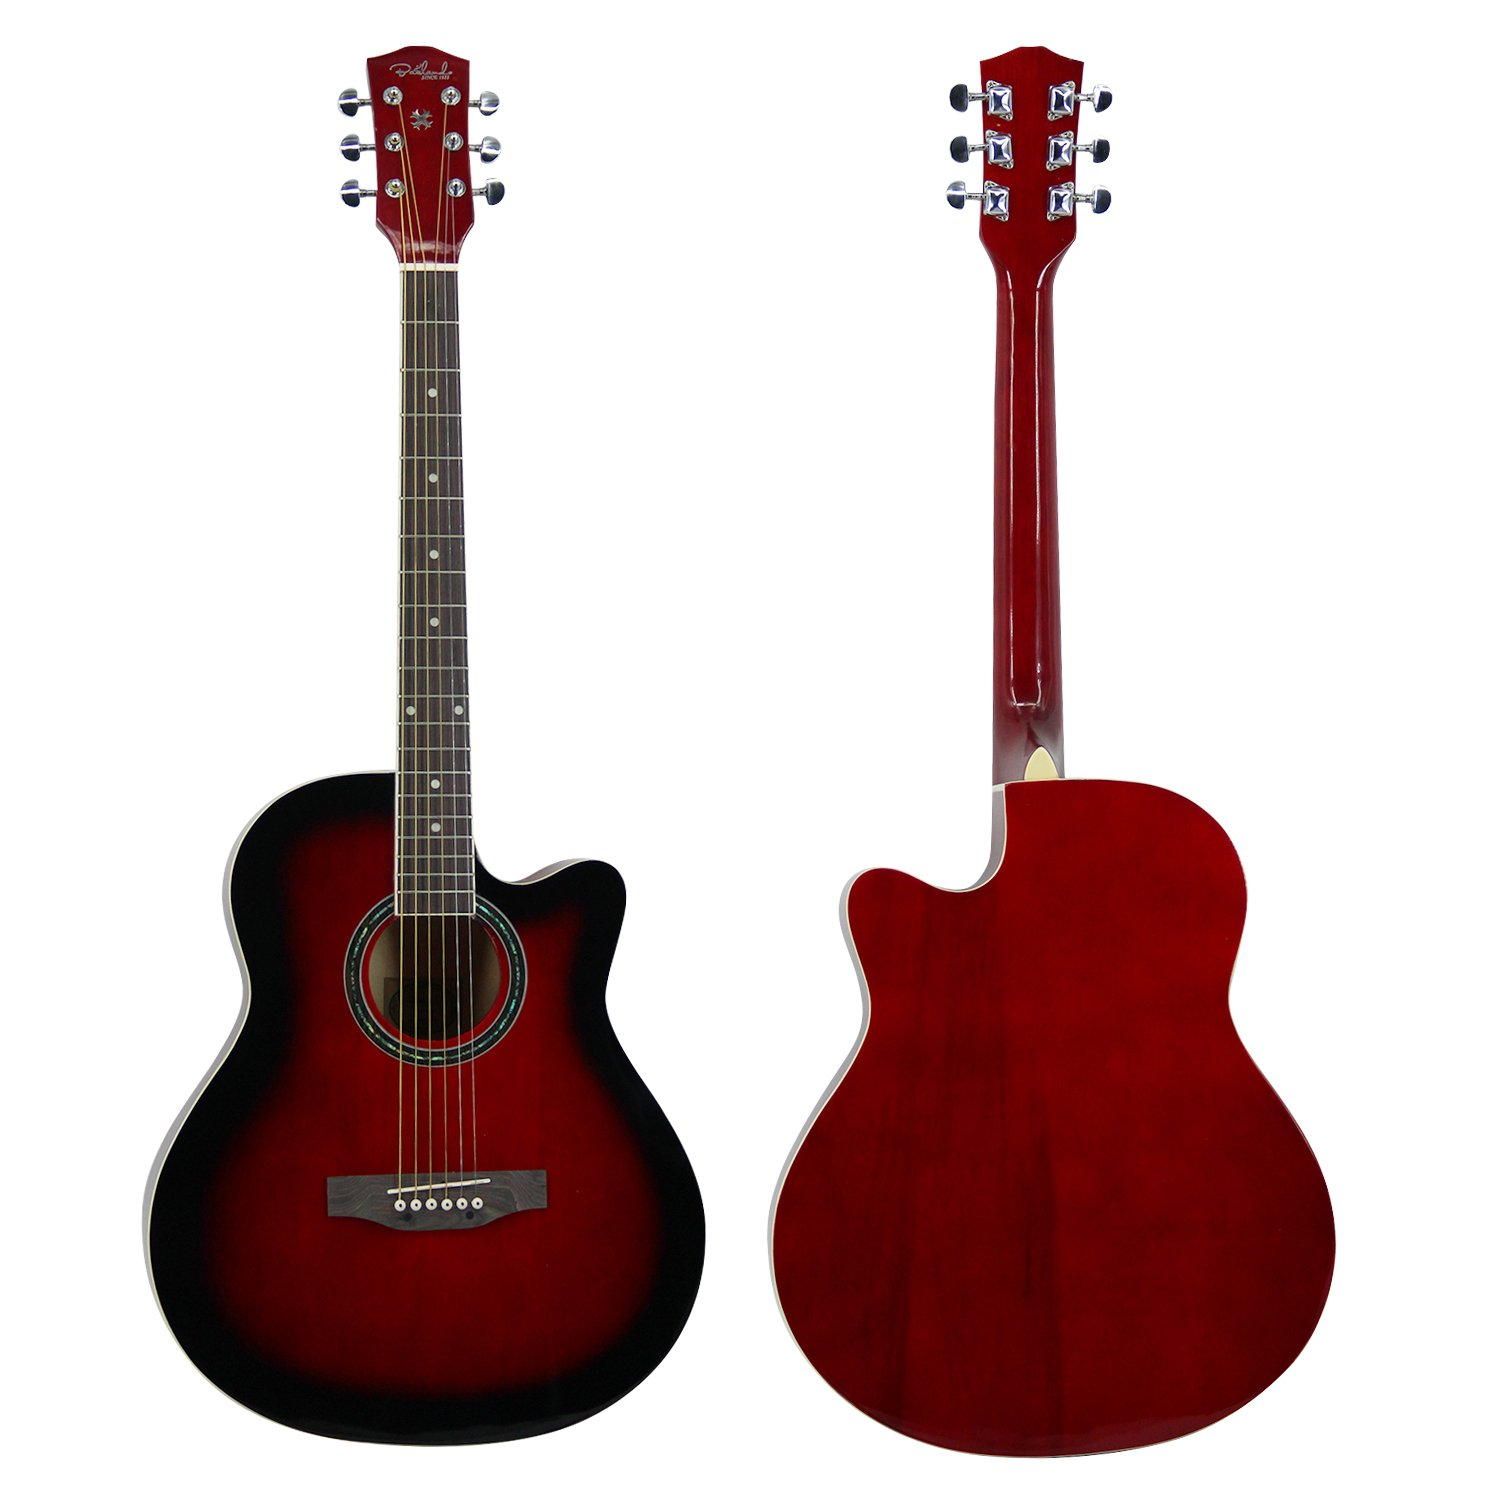 Front and Back View of the whole Redburst Bailando 40' Cutaway Acoustic Guitar